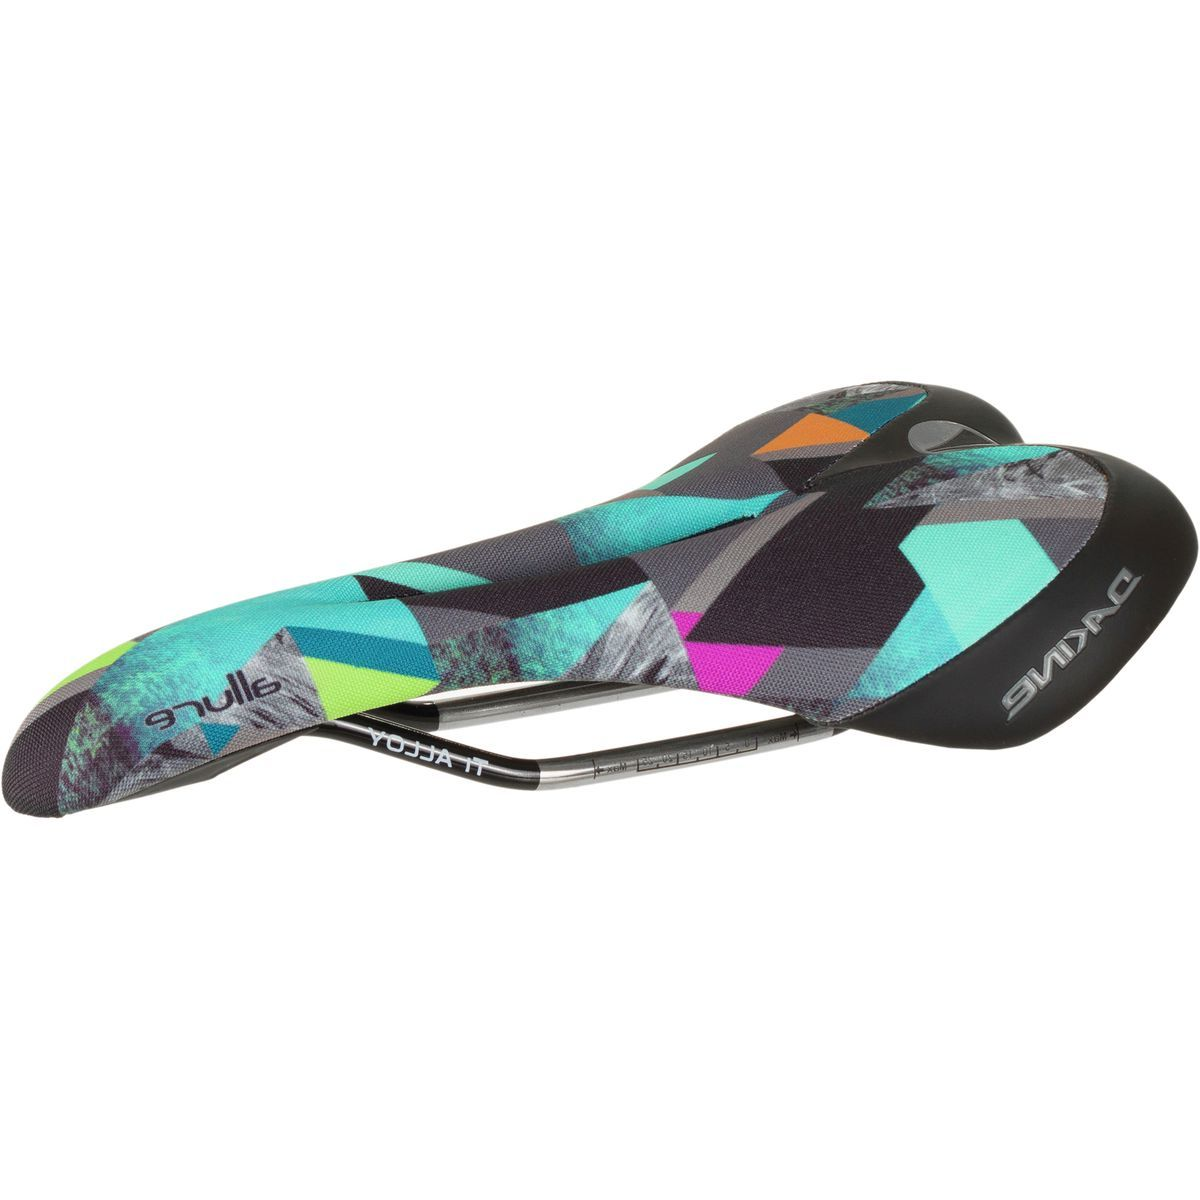 SDG Components Allure Dakine Steffi Marth Co-op Ti-Alloy Saddle - Women's